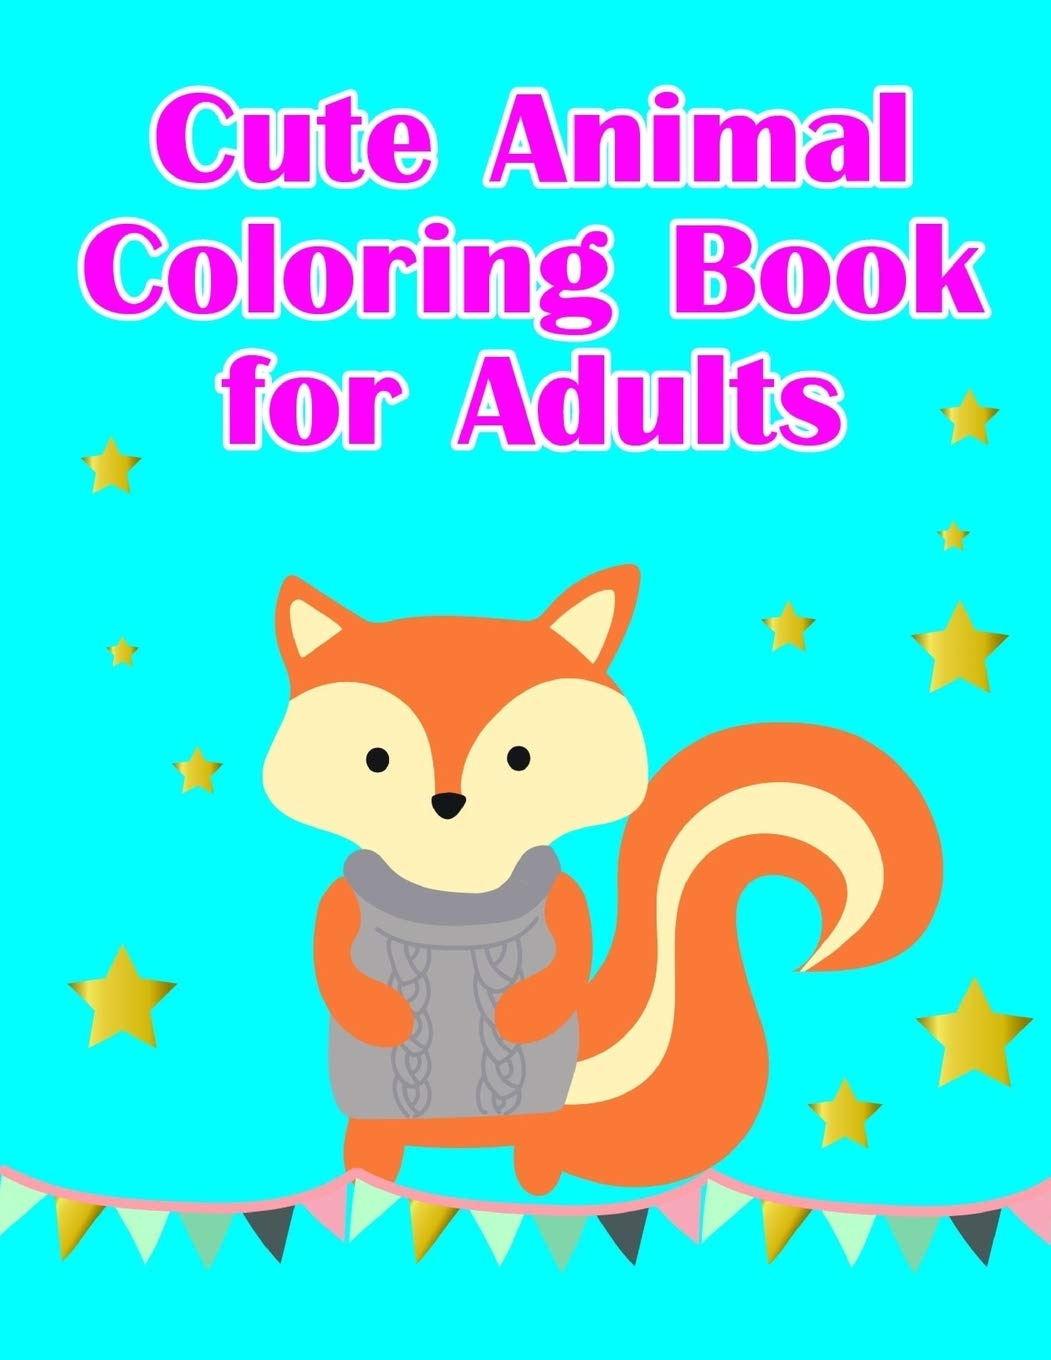 Cute Animal Coloring Book For Adults Christmas Coloring Pages With Animal Creative Art Activities For Children Kids And Adults 3 Adventure Coloring Amazon Co Uk Press Lucky Me Books